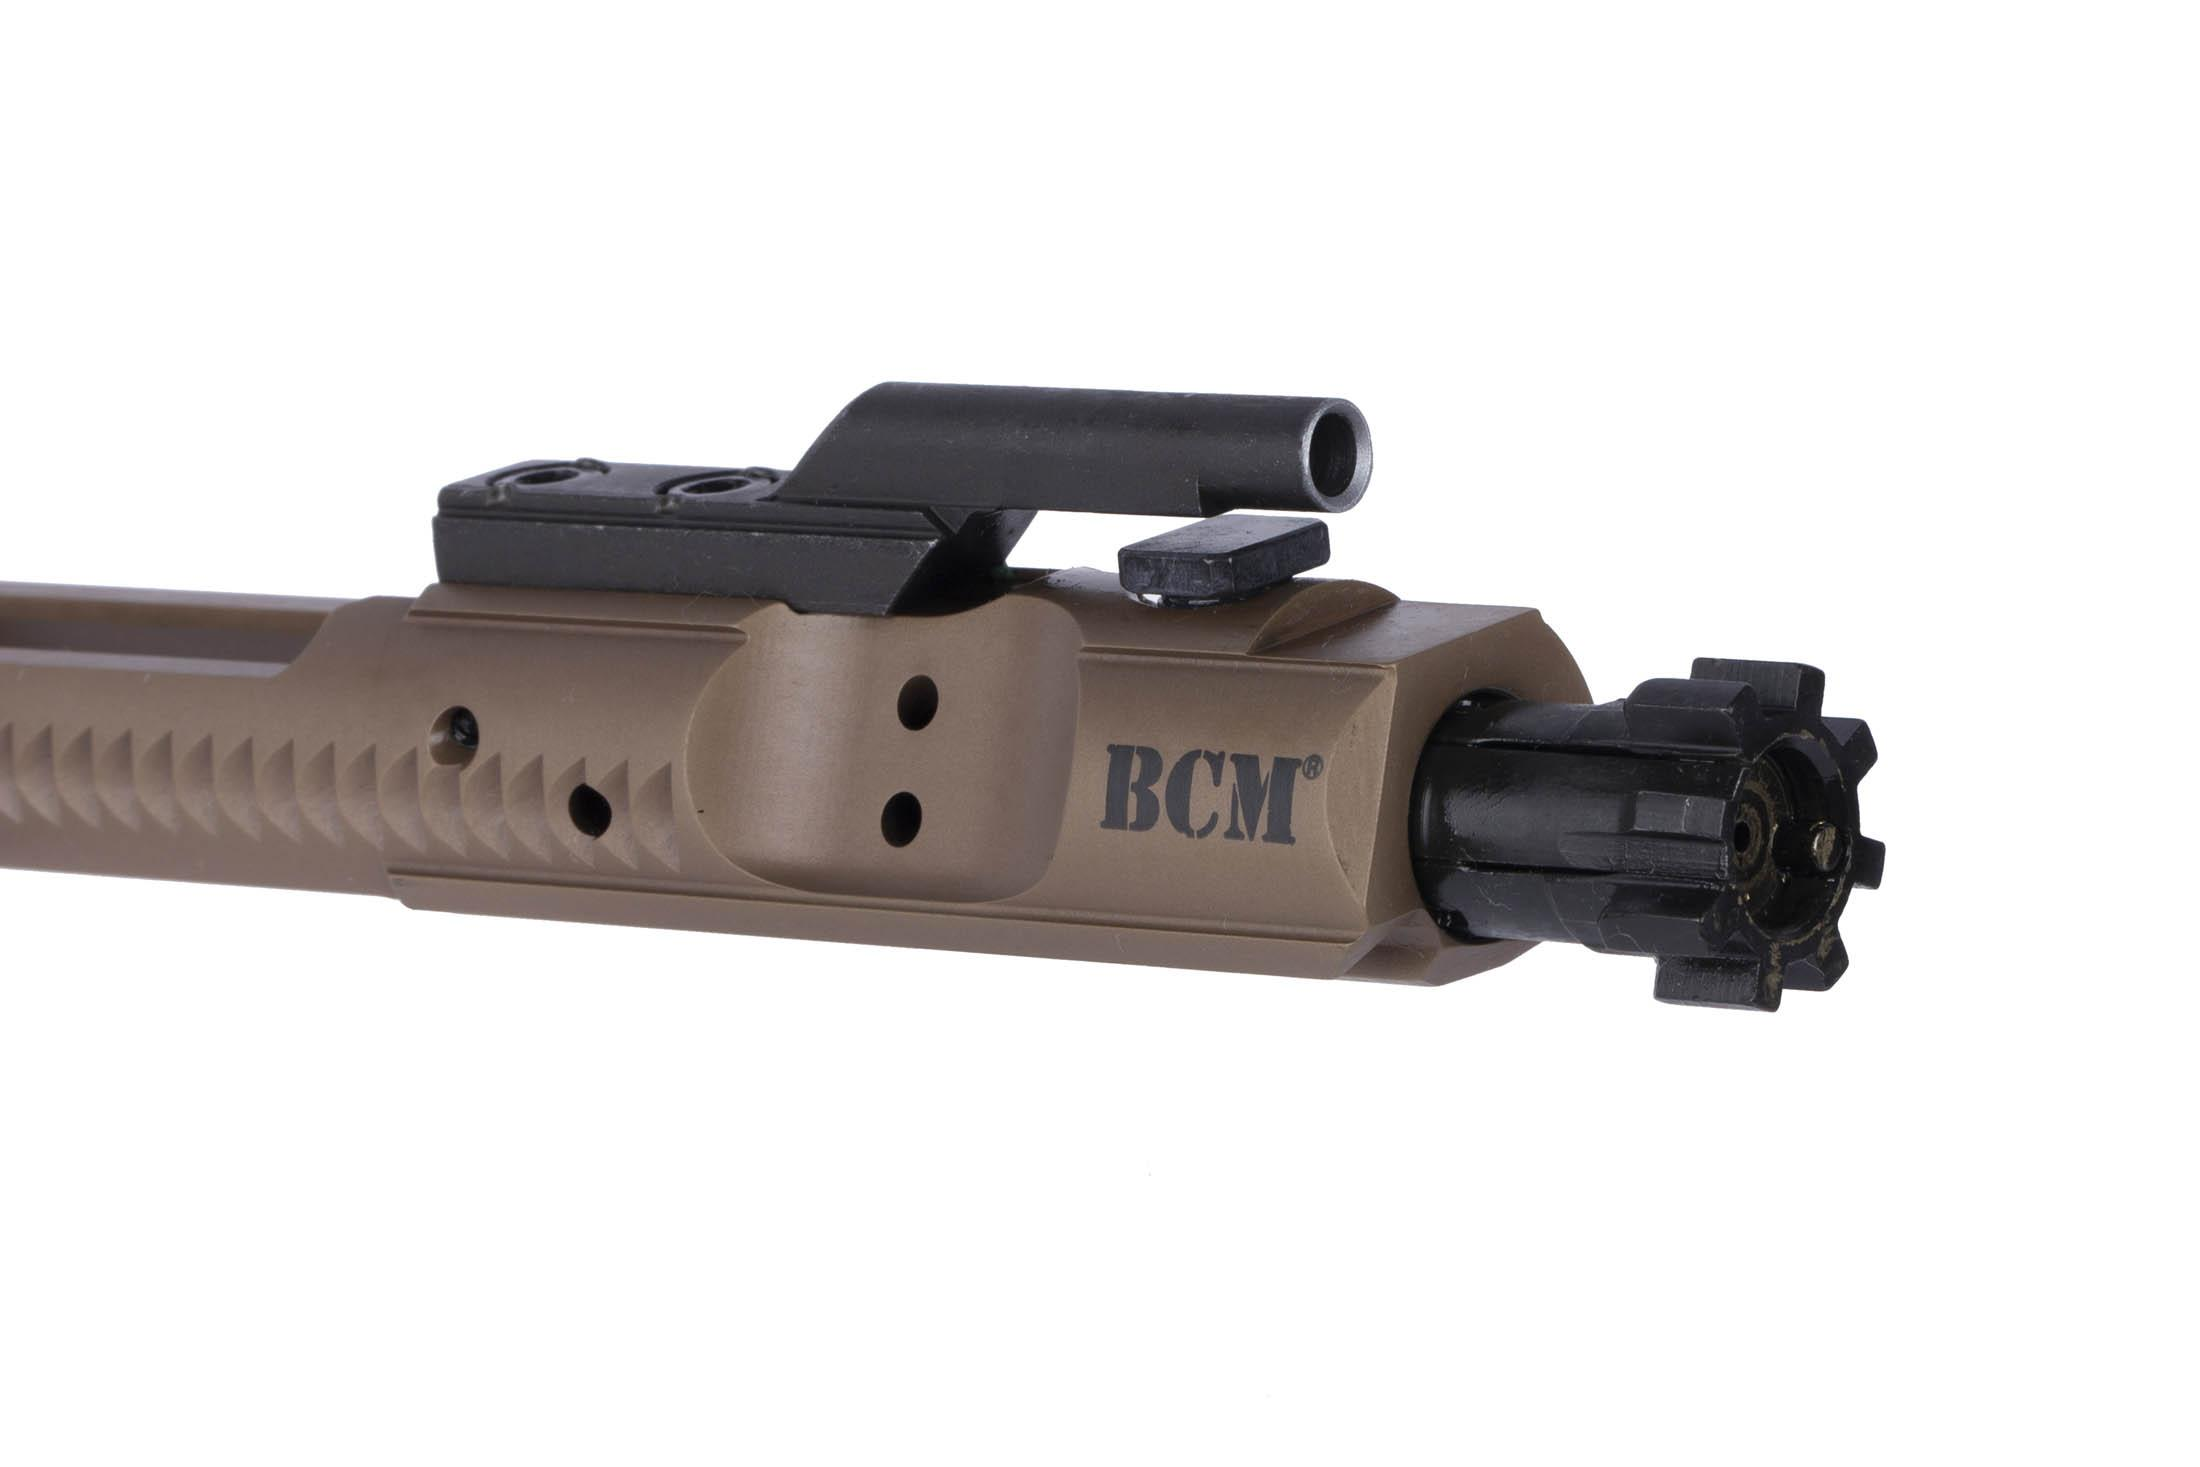 BCM 5.56 NATO AR-15 bolt carrier group is live fire tested and has a properly chrome lined gas key.